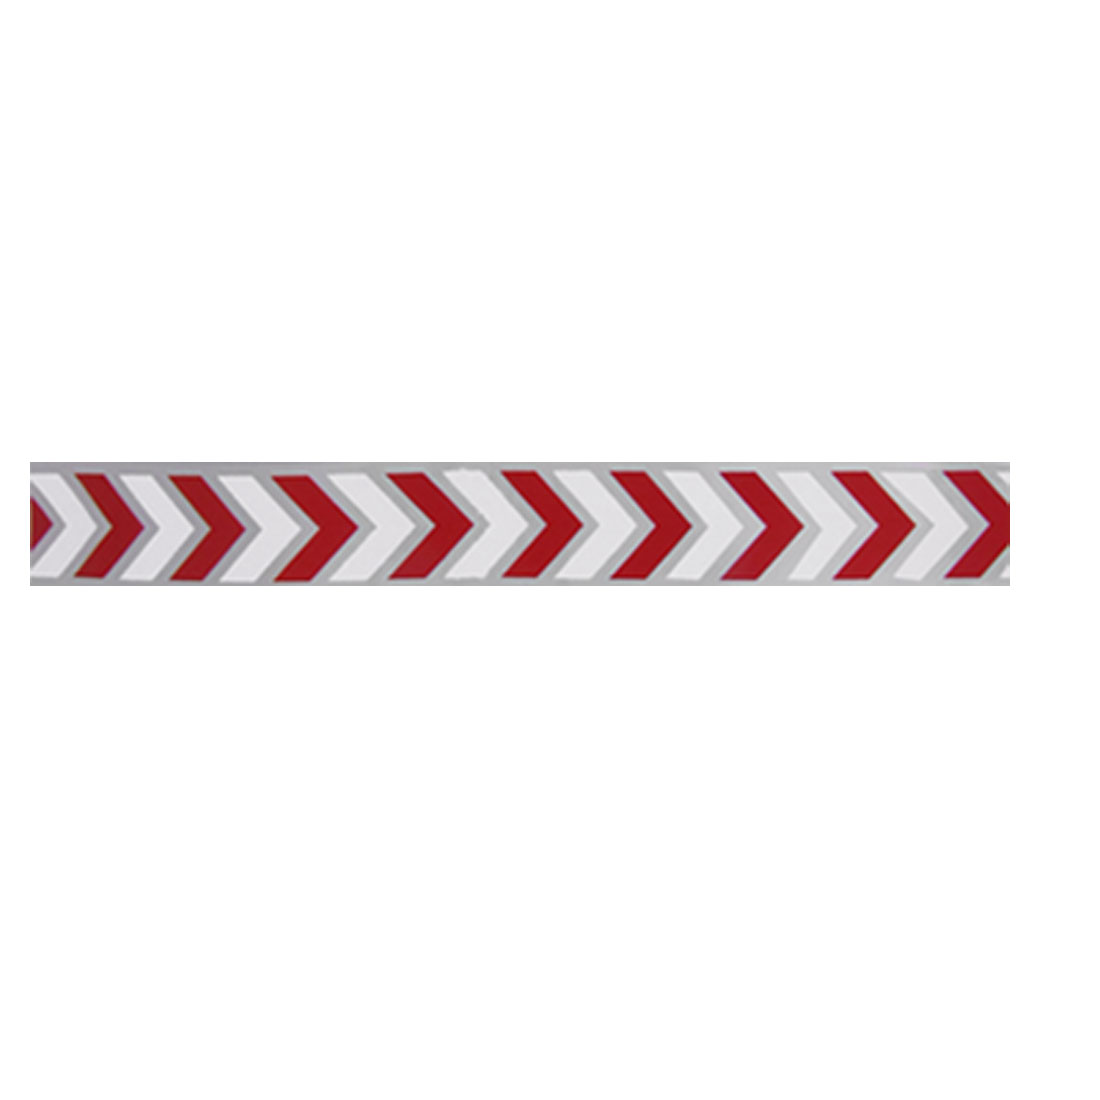 5 Pairs Car Truck Trailer Reflective Arrow Safety Sticker White Red Silver Tone